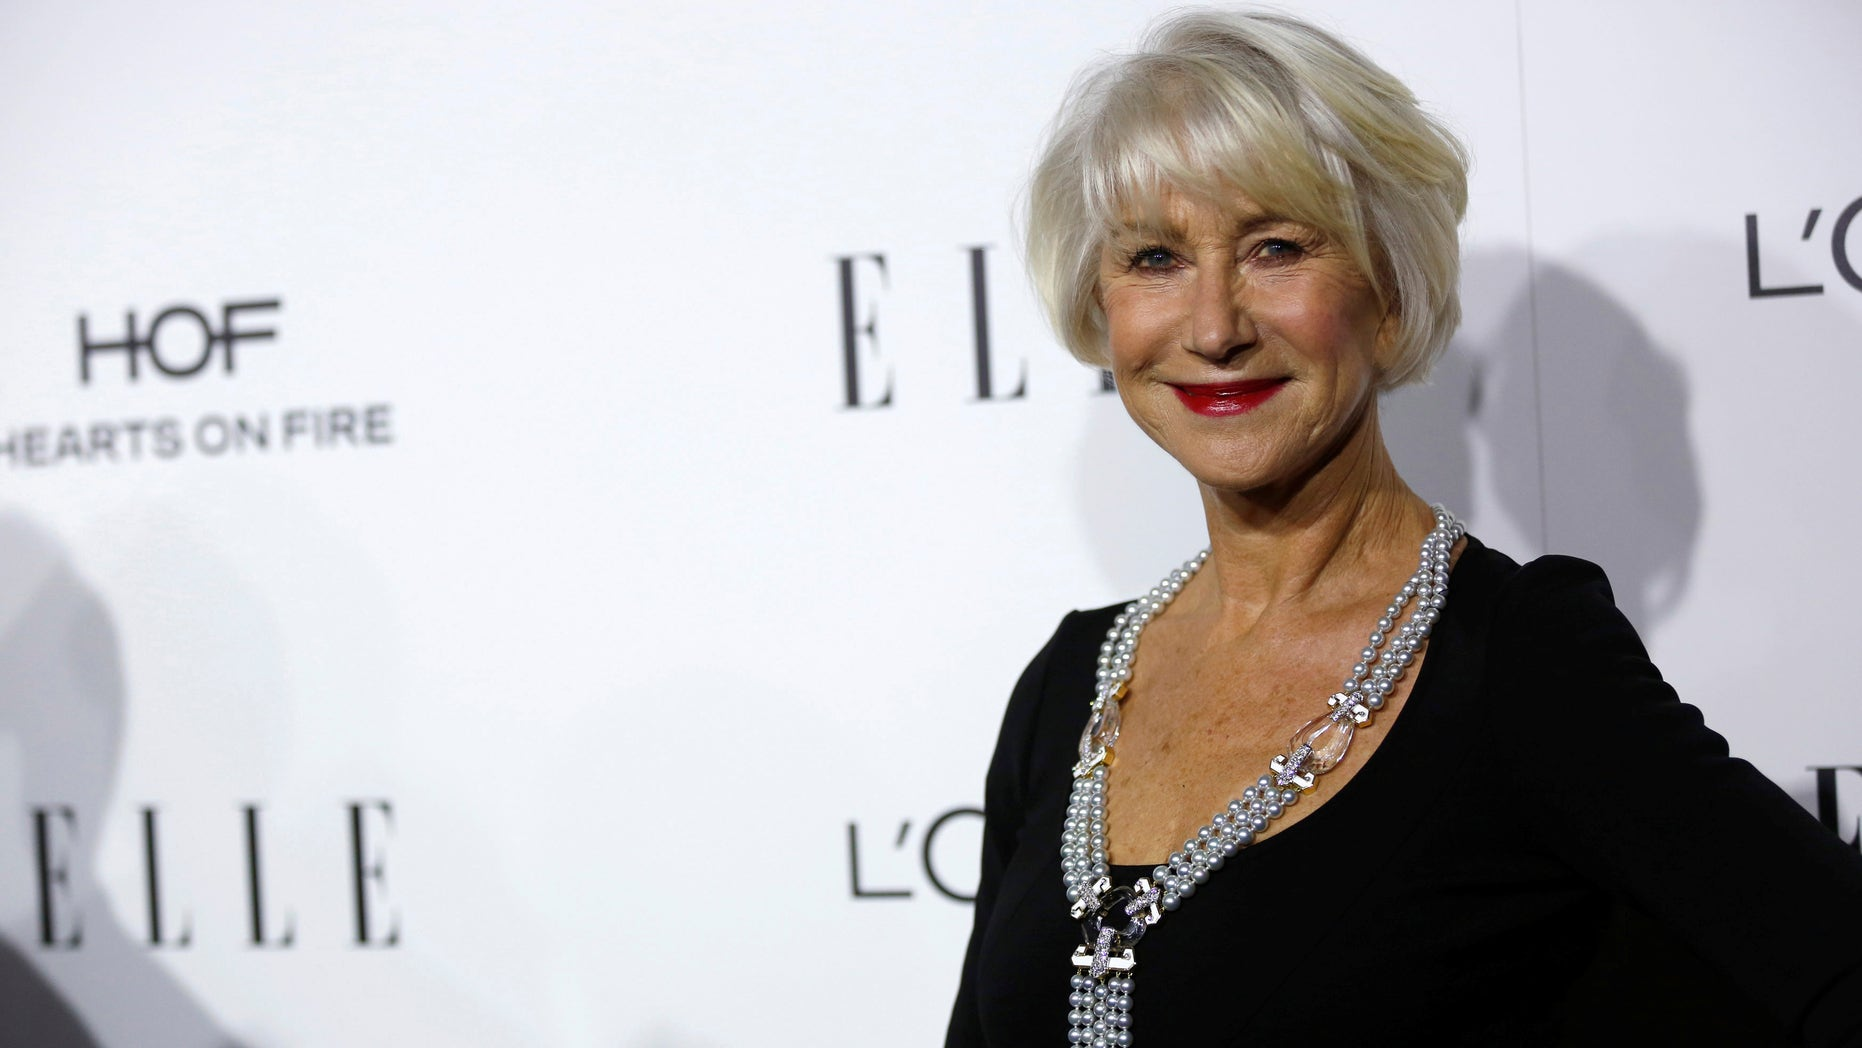 Instagram Helen Mirren nudes (91 photos), Tits, Sideboobs, Boobs, braless 2018